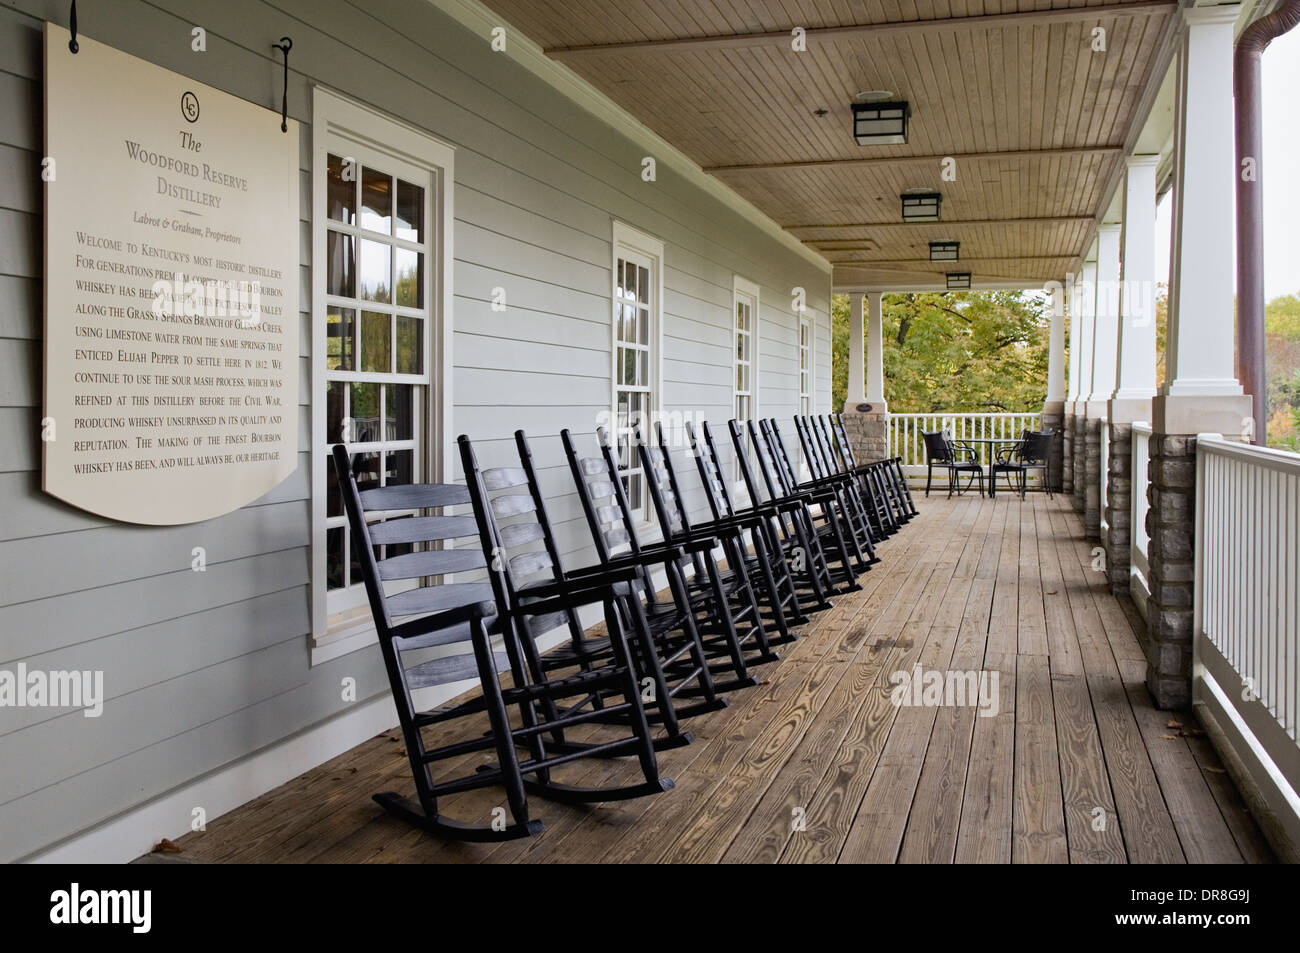 Porch at Woodford Reserve Visitor Center and Distillery in Woodford County, Kentucky - Stock Image